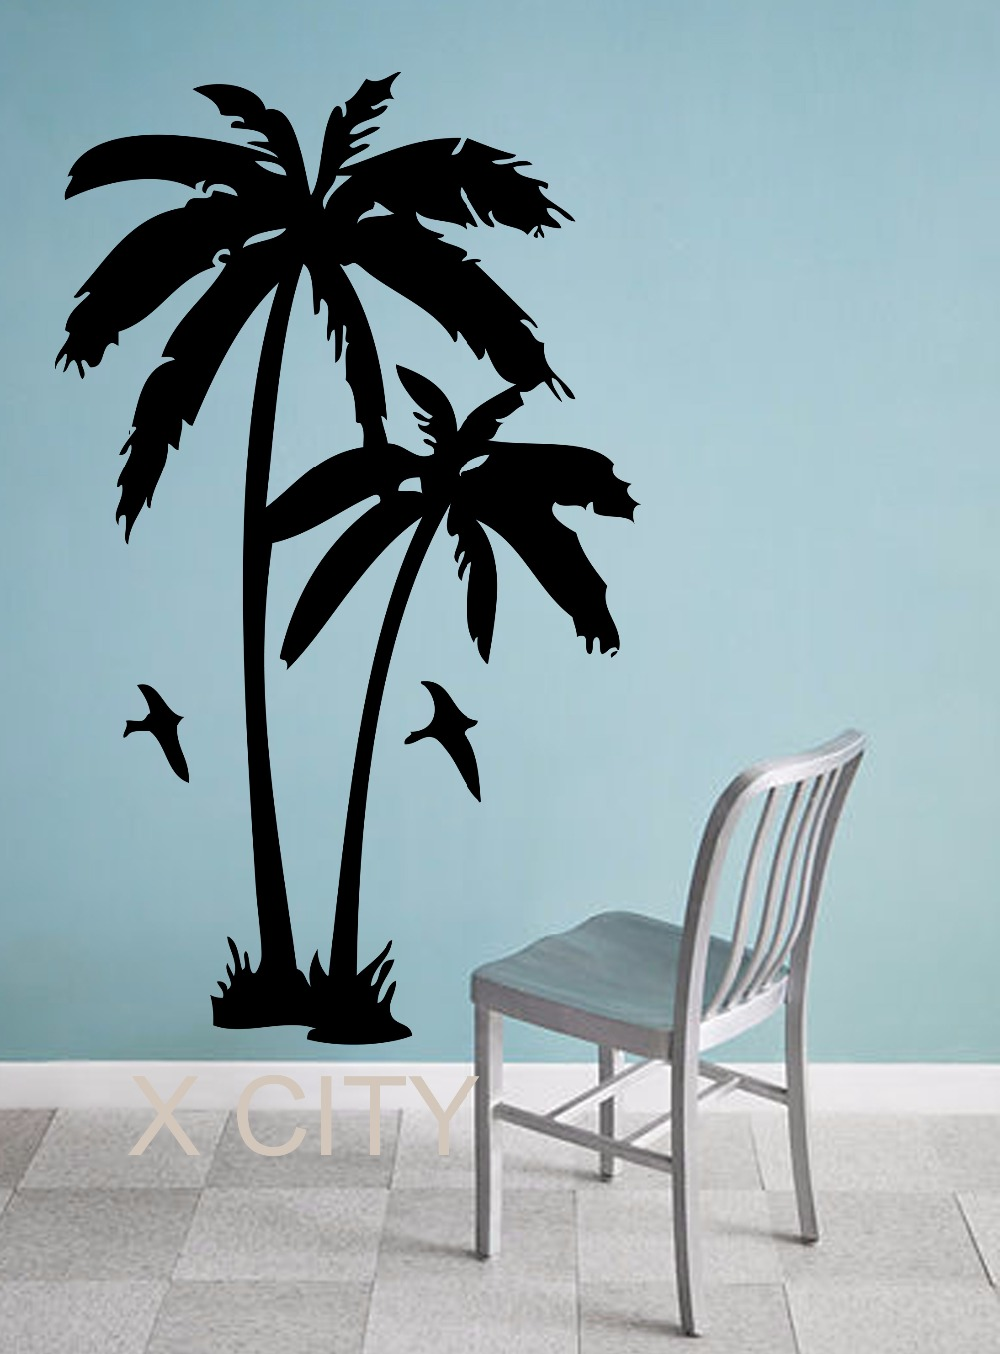 Palm Trees Tropic Landscape Giant Wall Sticker Vinyl Art Decal Window  SILHOUETTE Stencil Living Room Decor